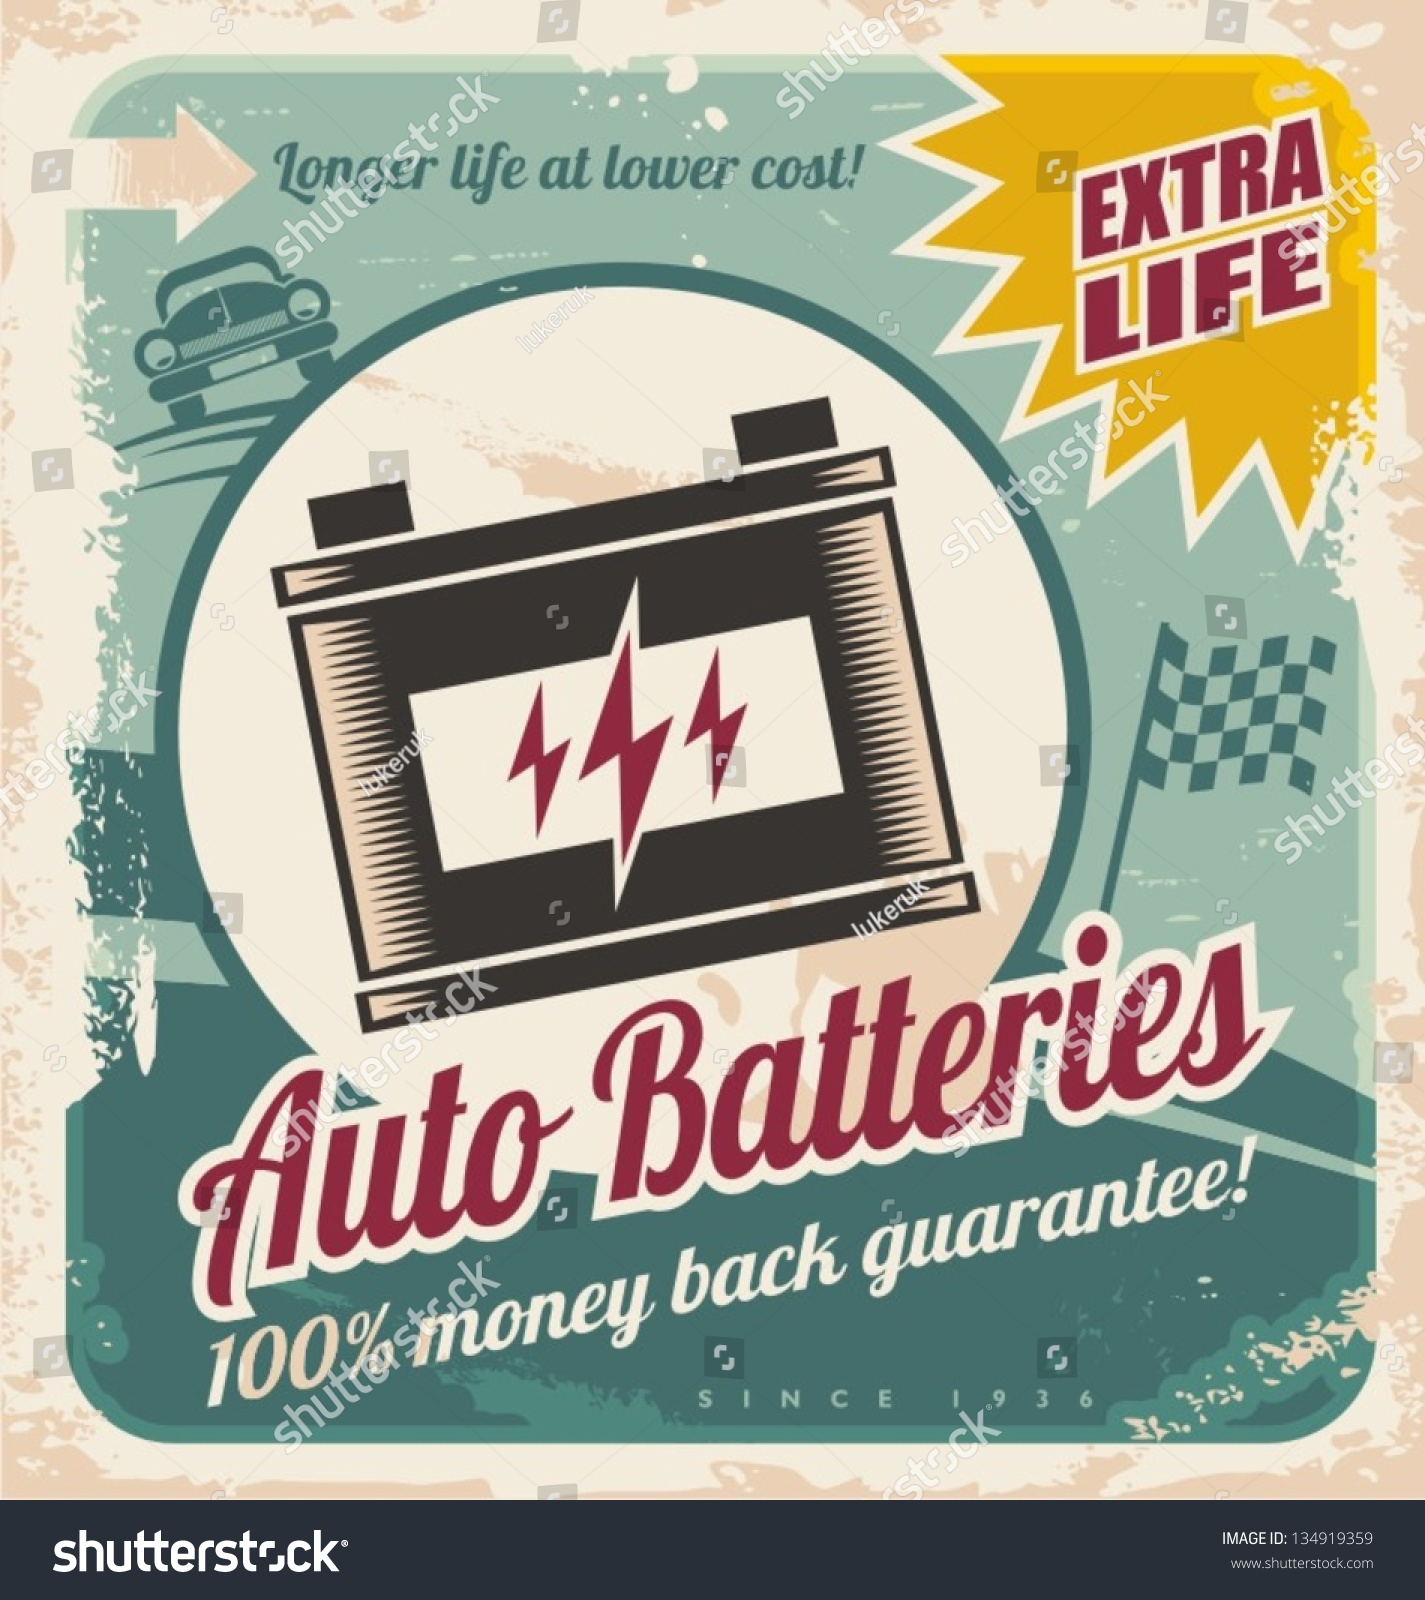 Retro auto batteries poster design vintage background for car service or parts shop